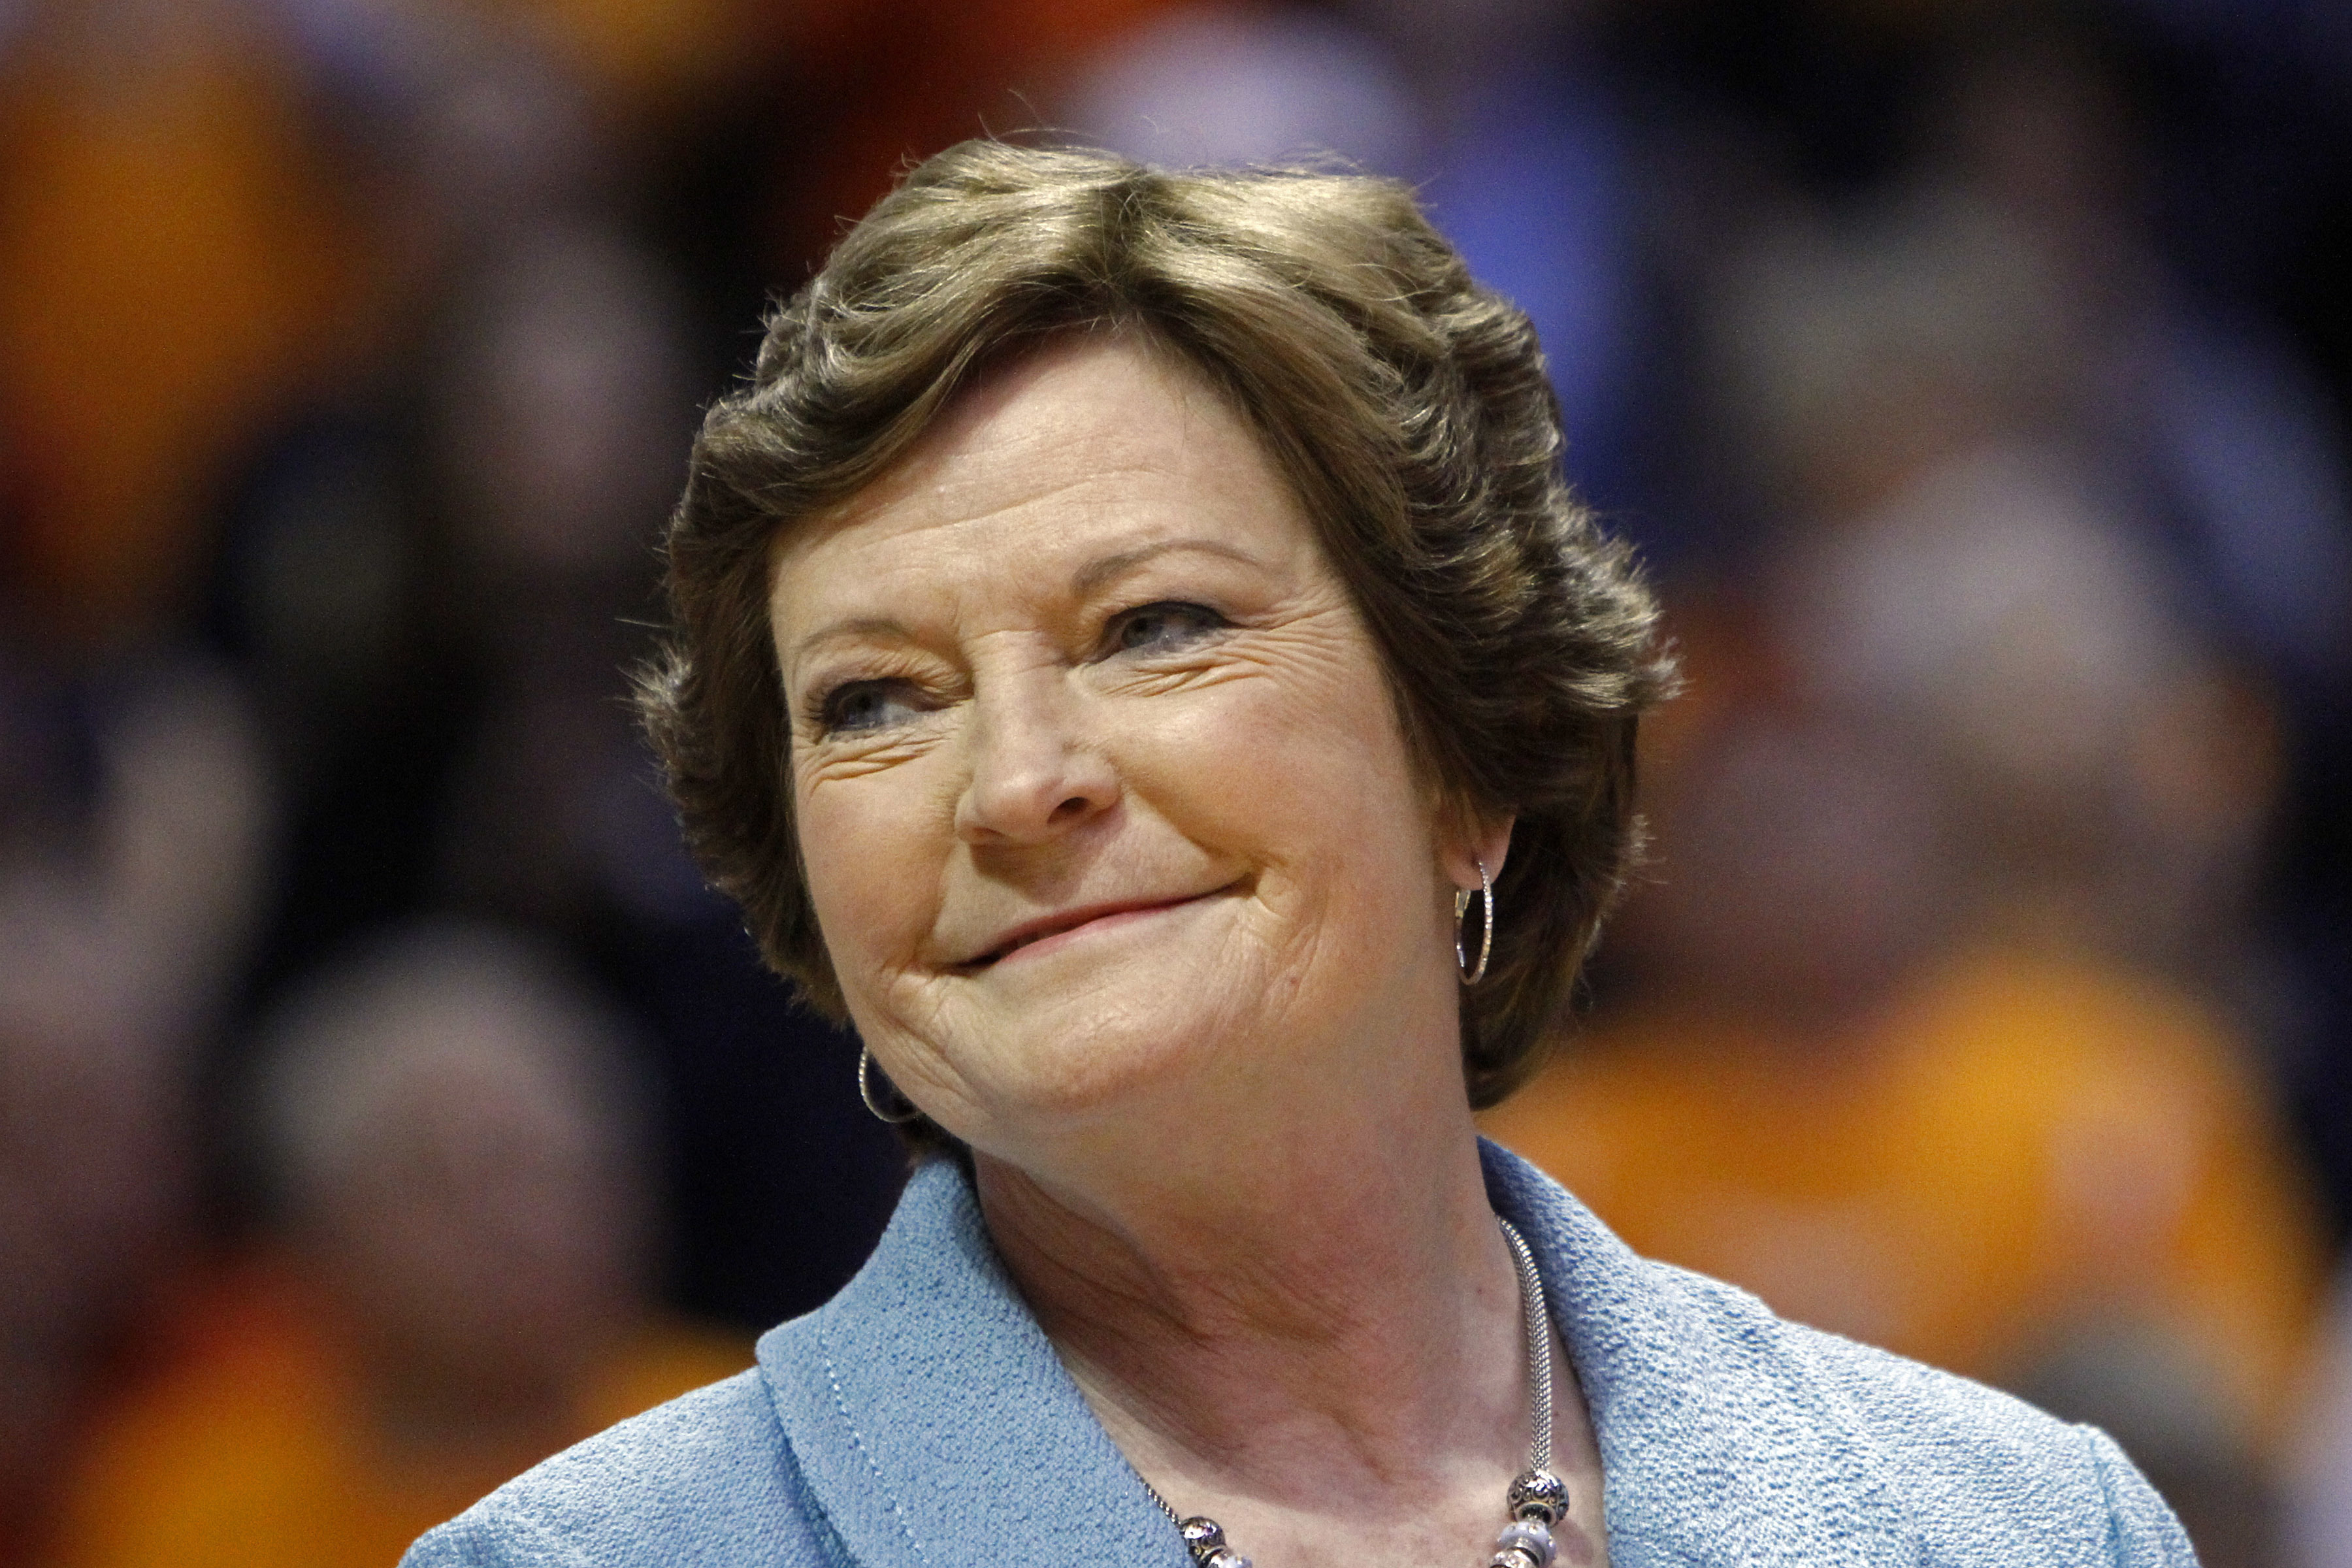 FILE - In this Jan. 28, 2013, file photo, former Tennessee women's basketball coach Pat Summitt smiles as a banner is raised in her honor before the team's NCAA college basketball game against Notre Dame in Knoxville, Tenn. Amid reports of Summitts failin